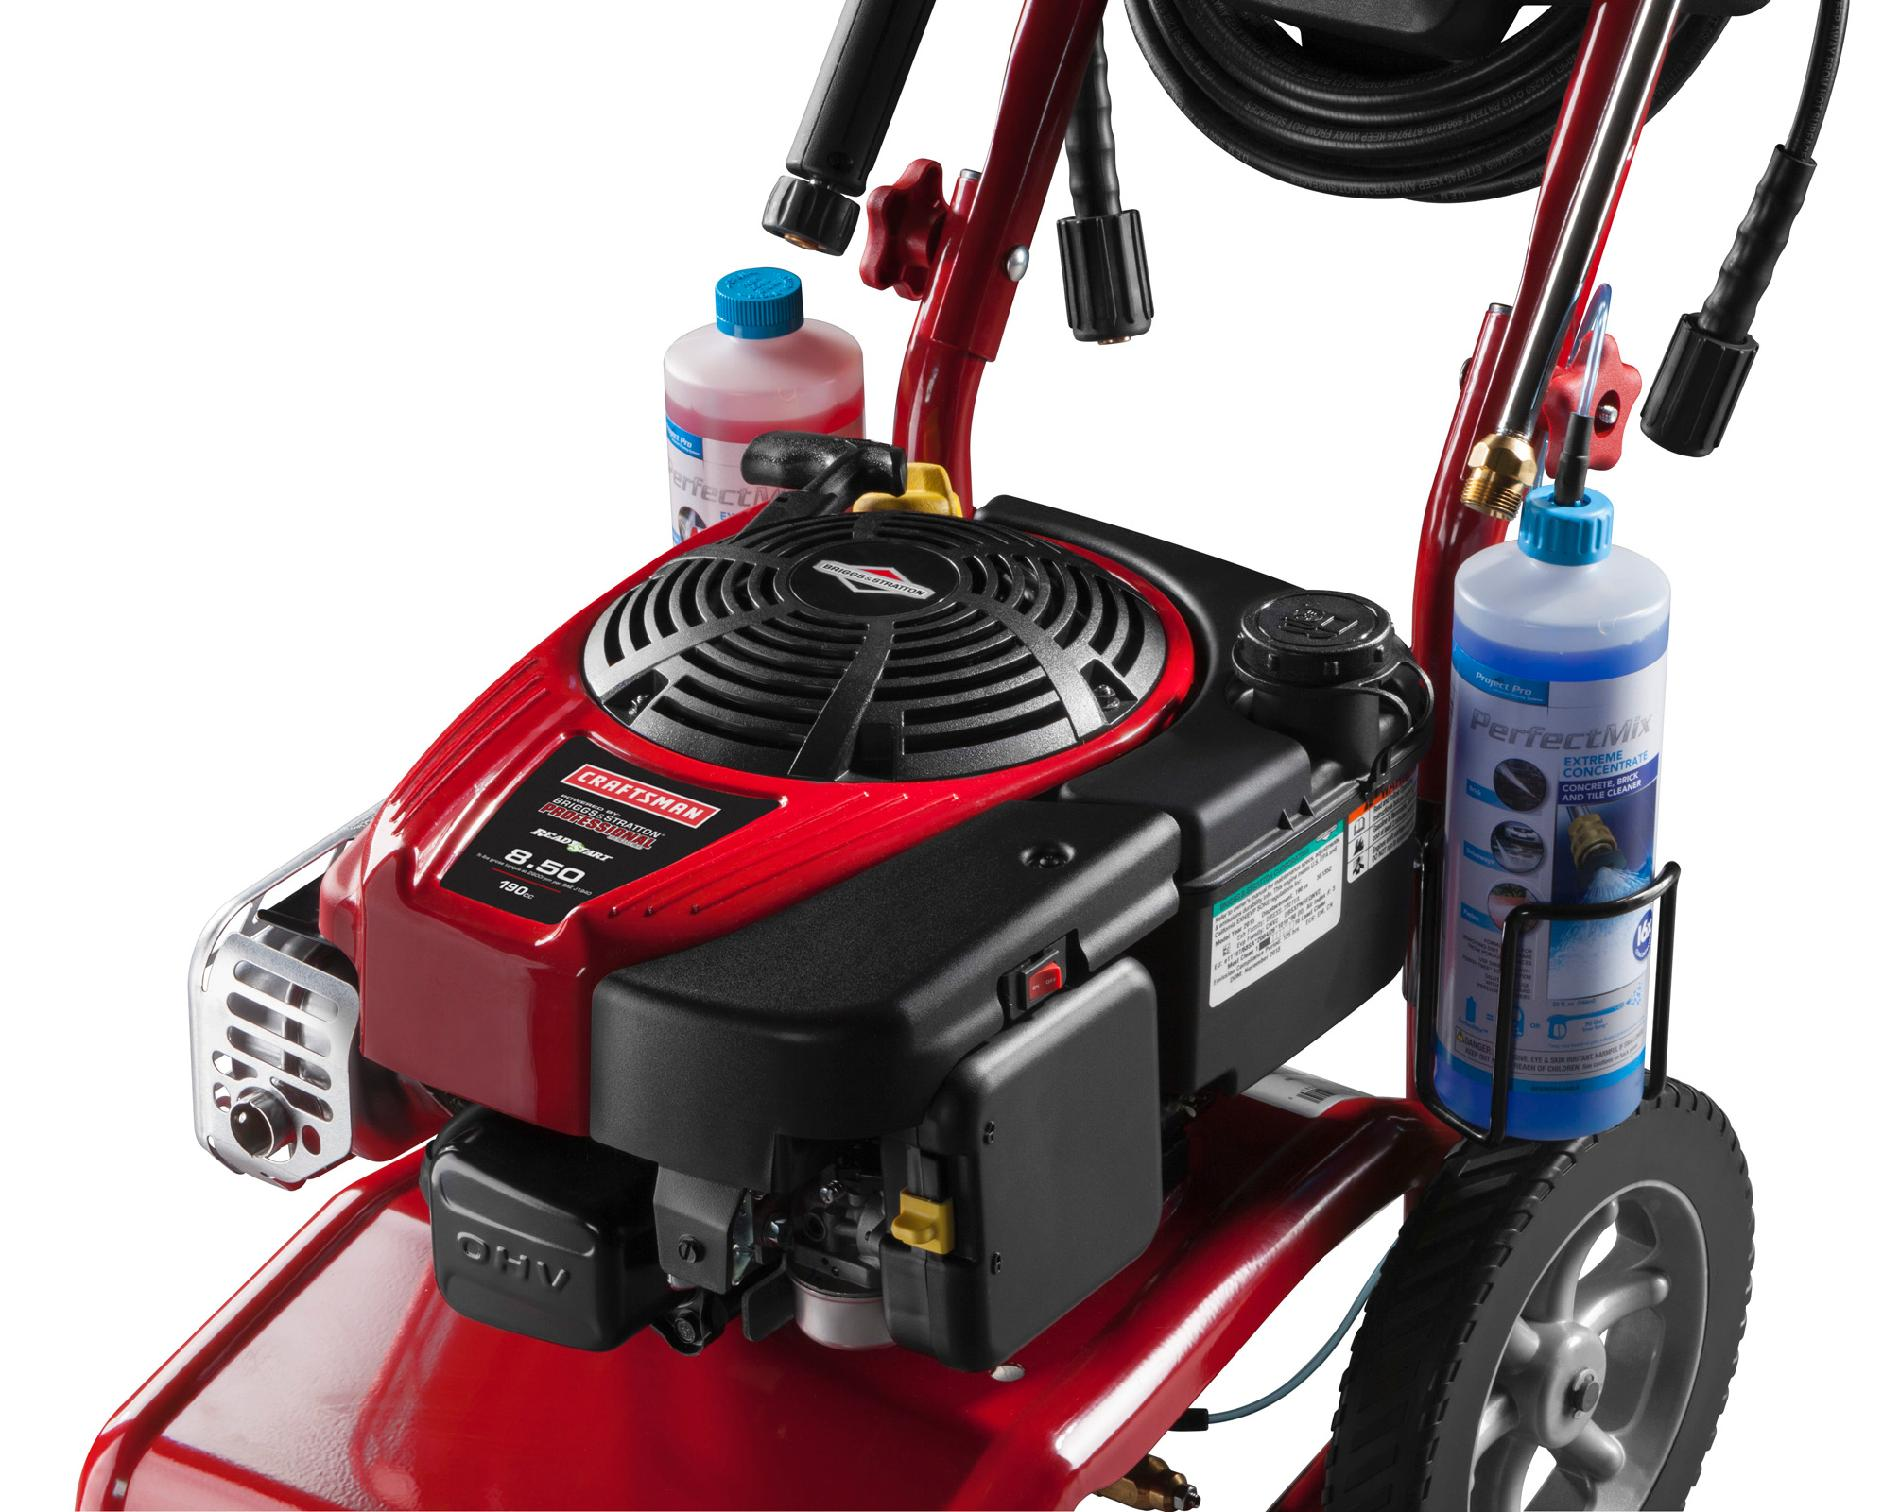 Craftsman 2800 psi 2.3 GPM Gas Pressure Washer